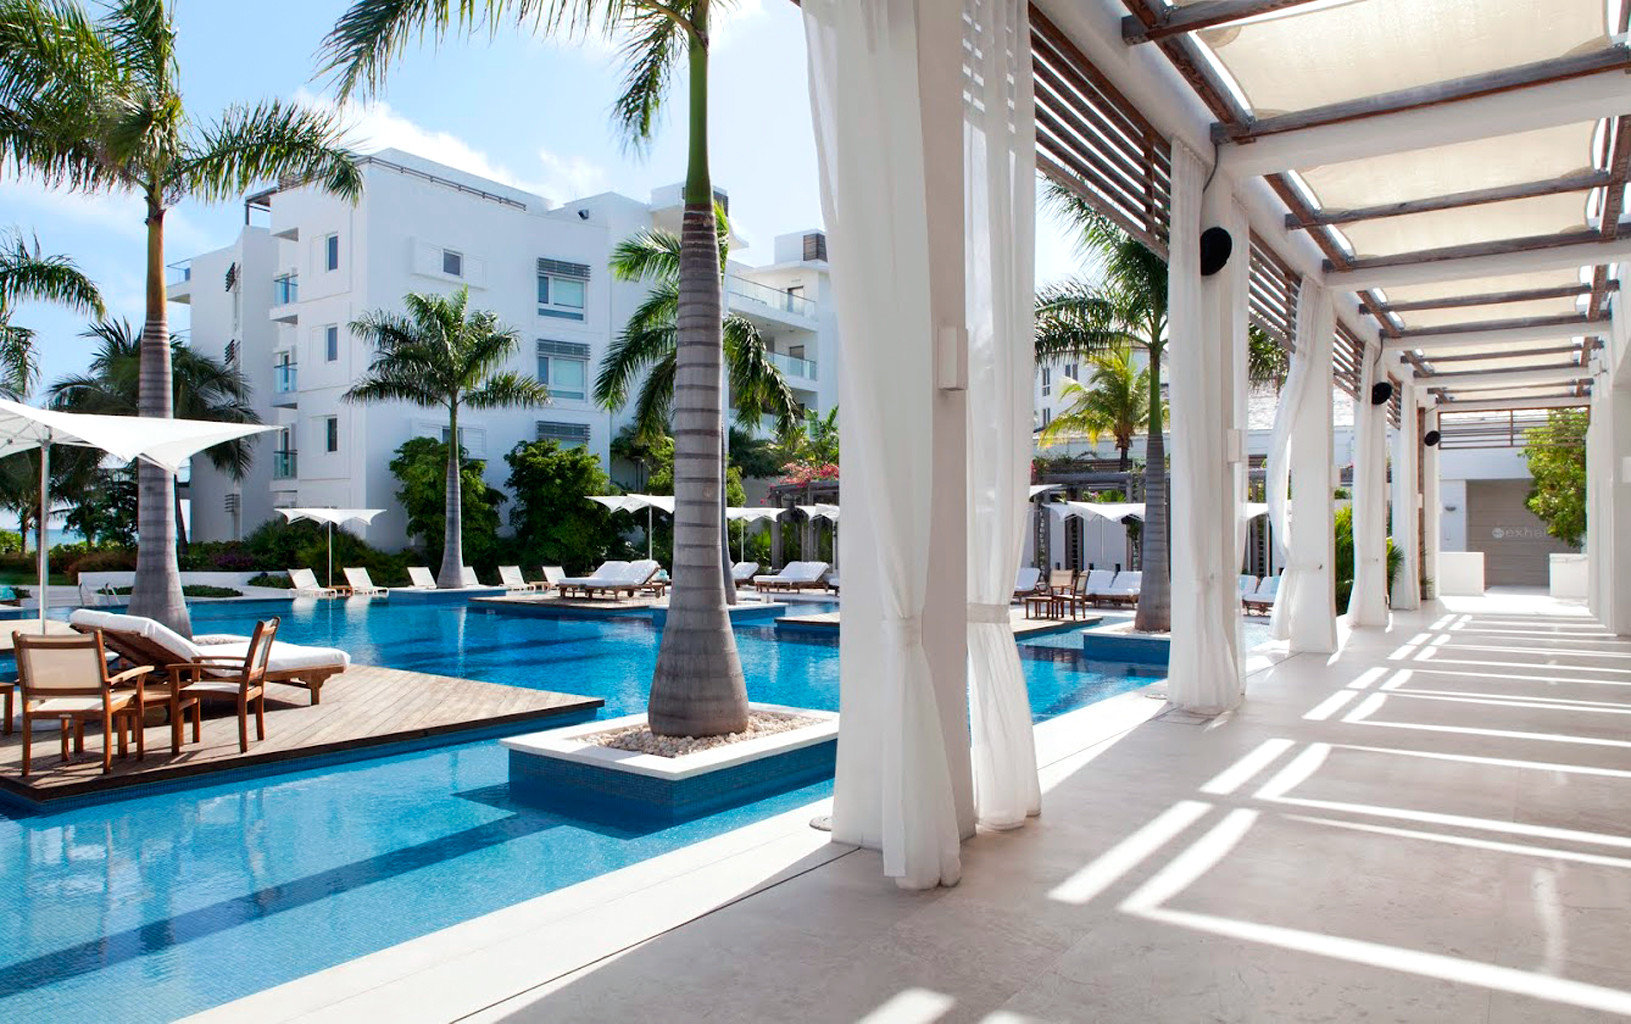 Beachfront Grounds Hotels Play Pool Resort Trip Ideas building outdoor property leisure condominium swimming pool estate vacation Villa real estate home mansion plaza apartment furniture colonnade